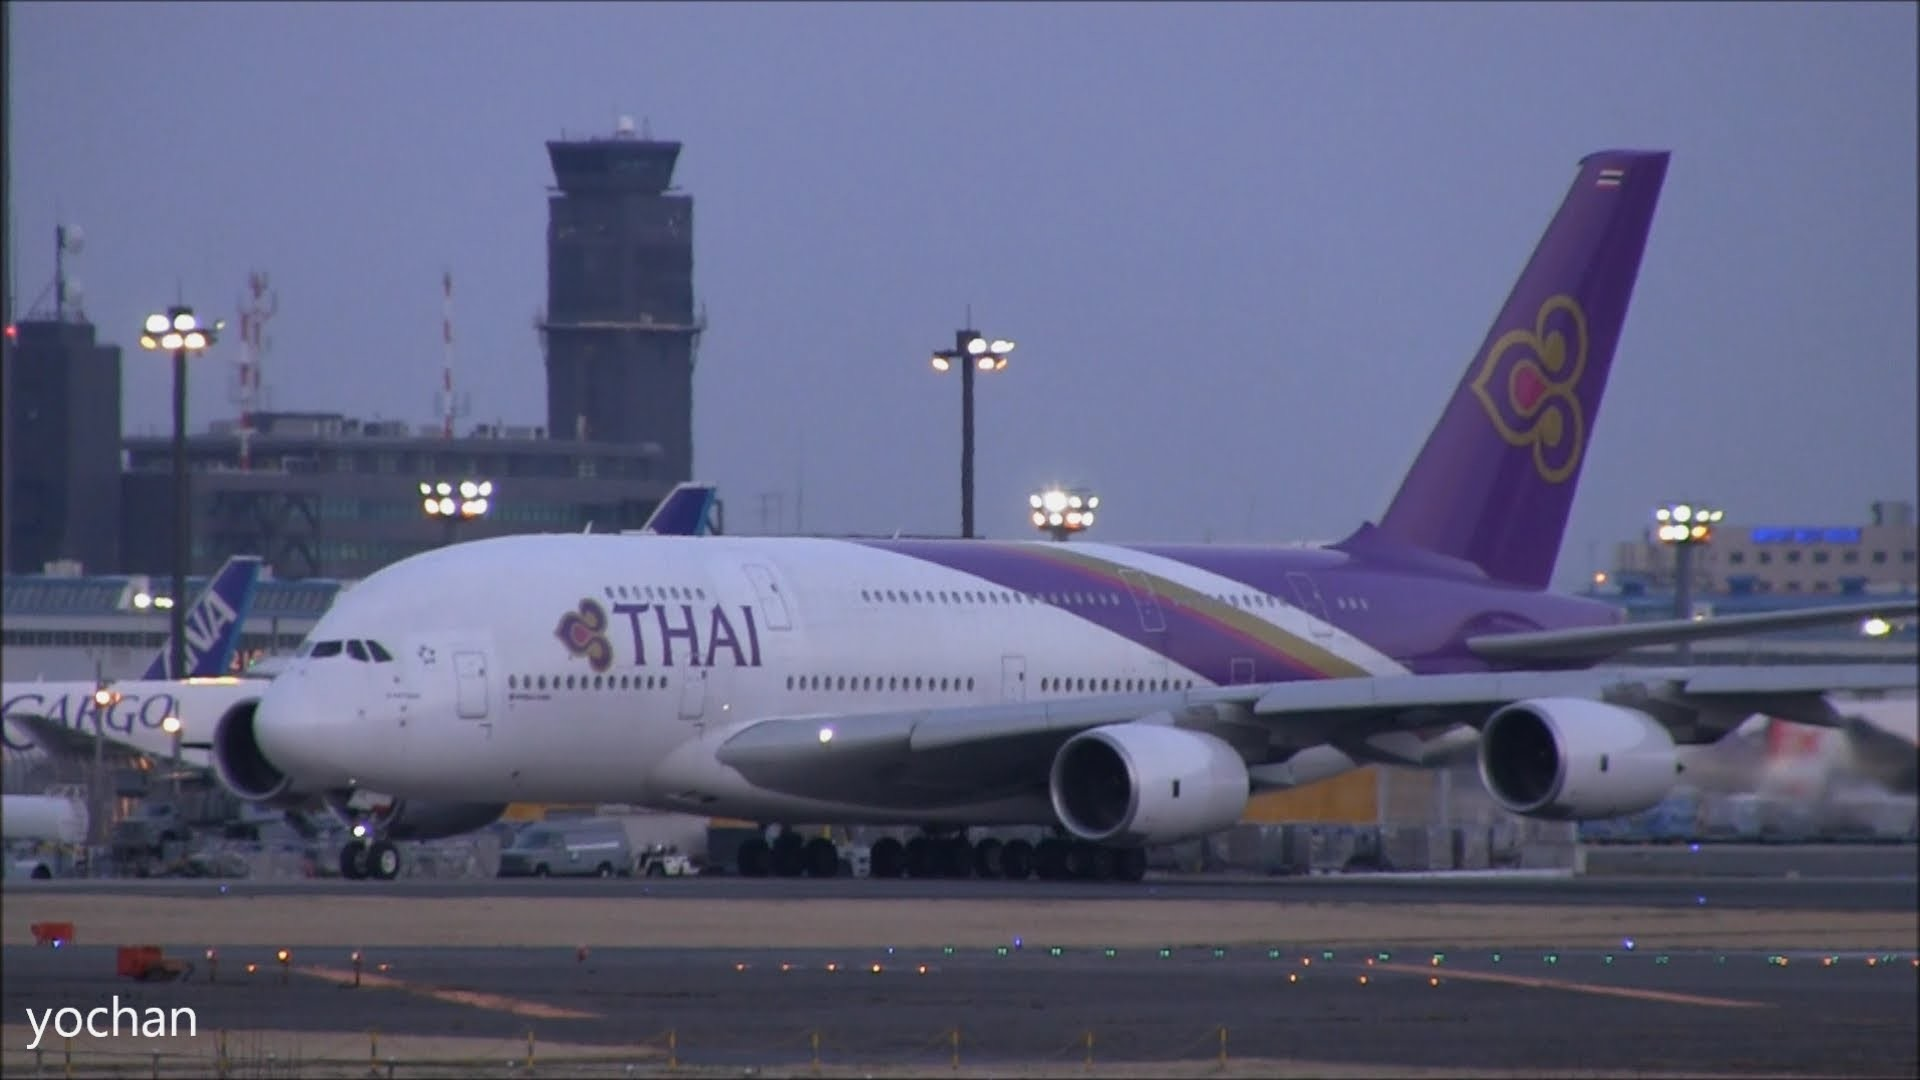 1920x1080 Thai Airways International (บริษัท การบินไทย จำกัด) Airbus A380-841  (HS-TUA).Taxiing and Take-off